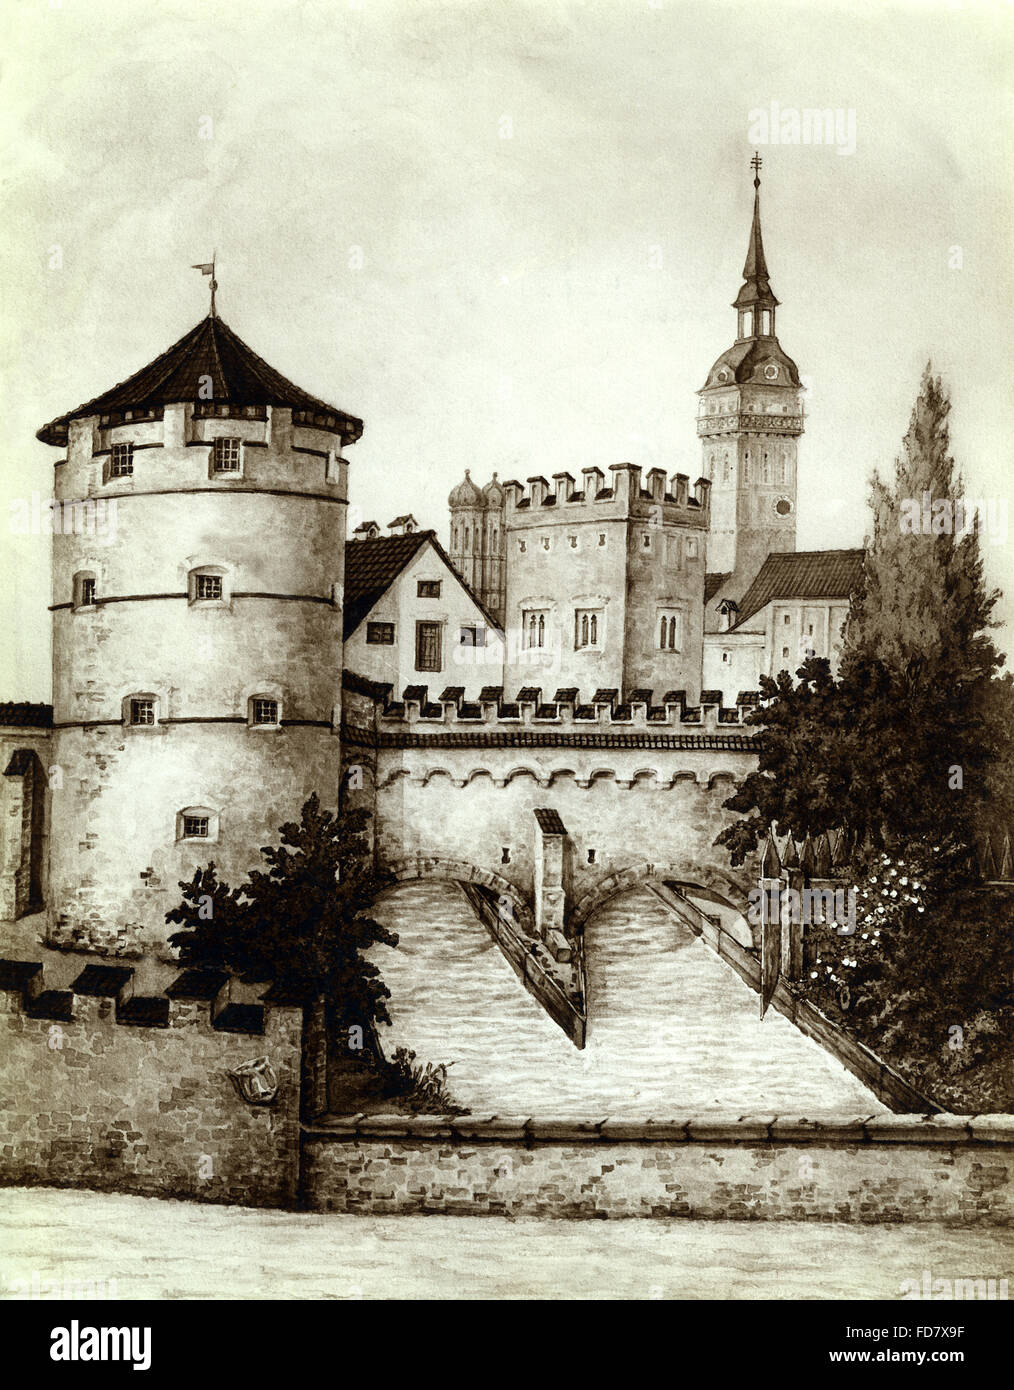 Old town gate on the Viktualienmarkt in Munich, 1836 - Stock Image